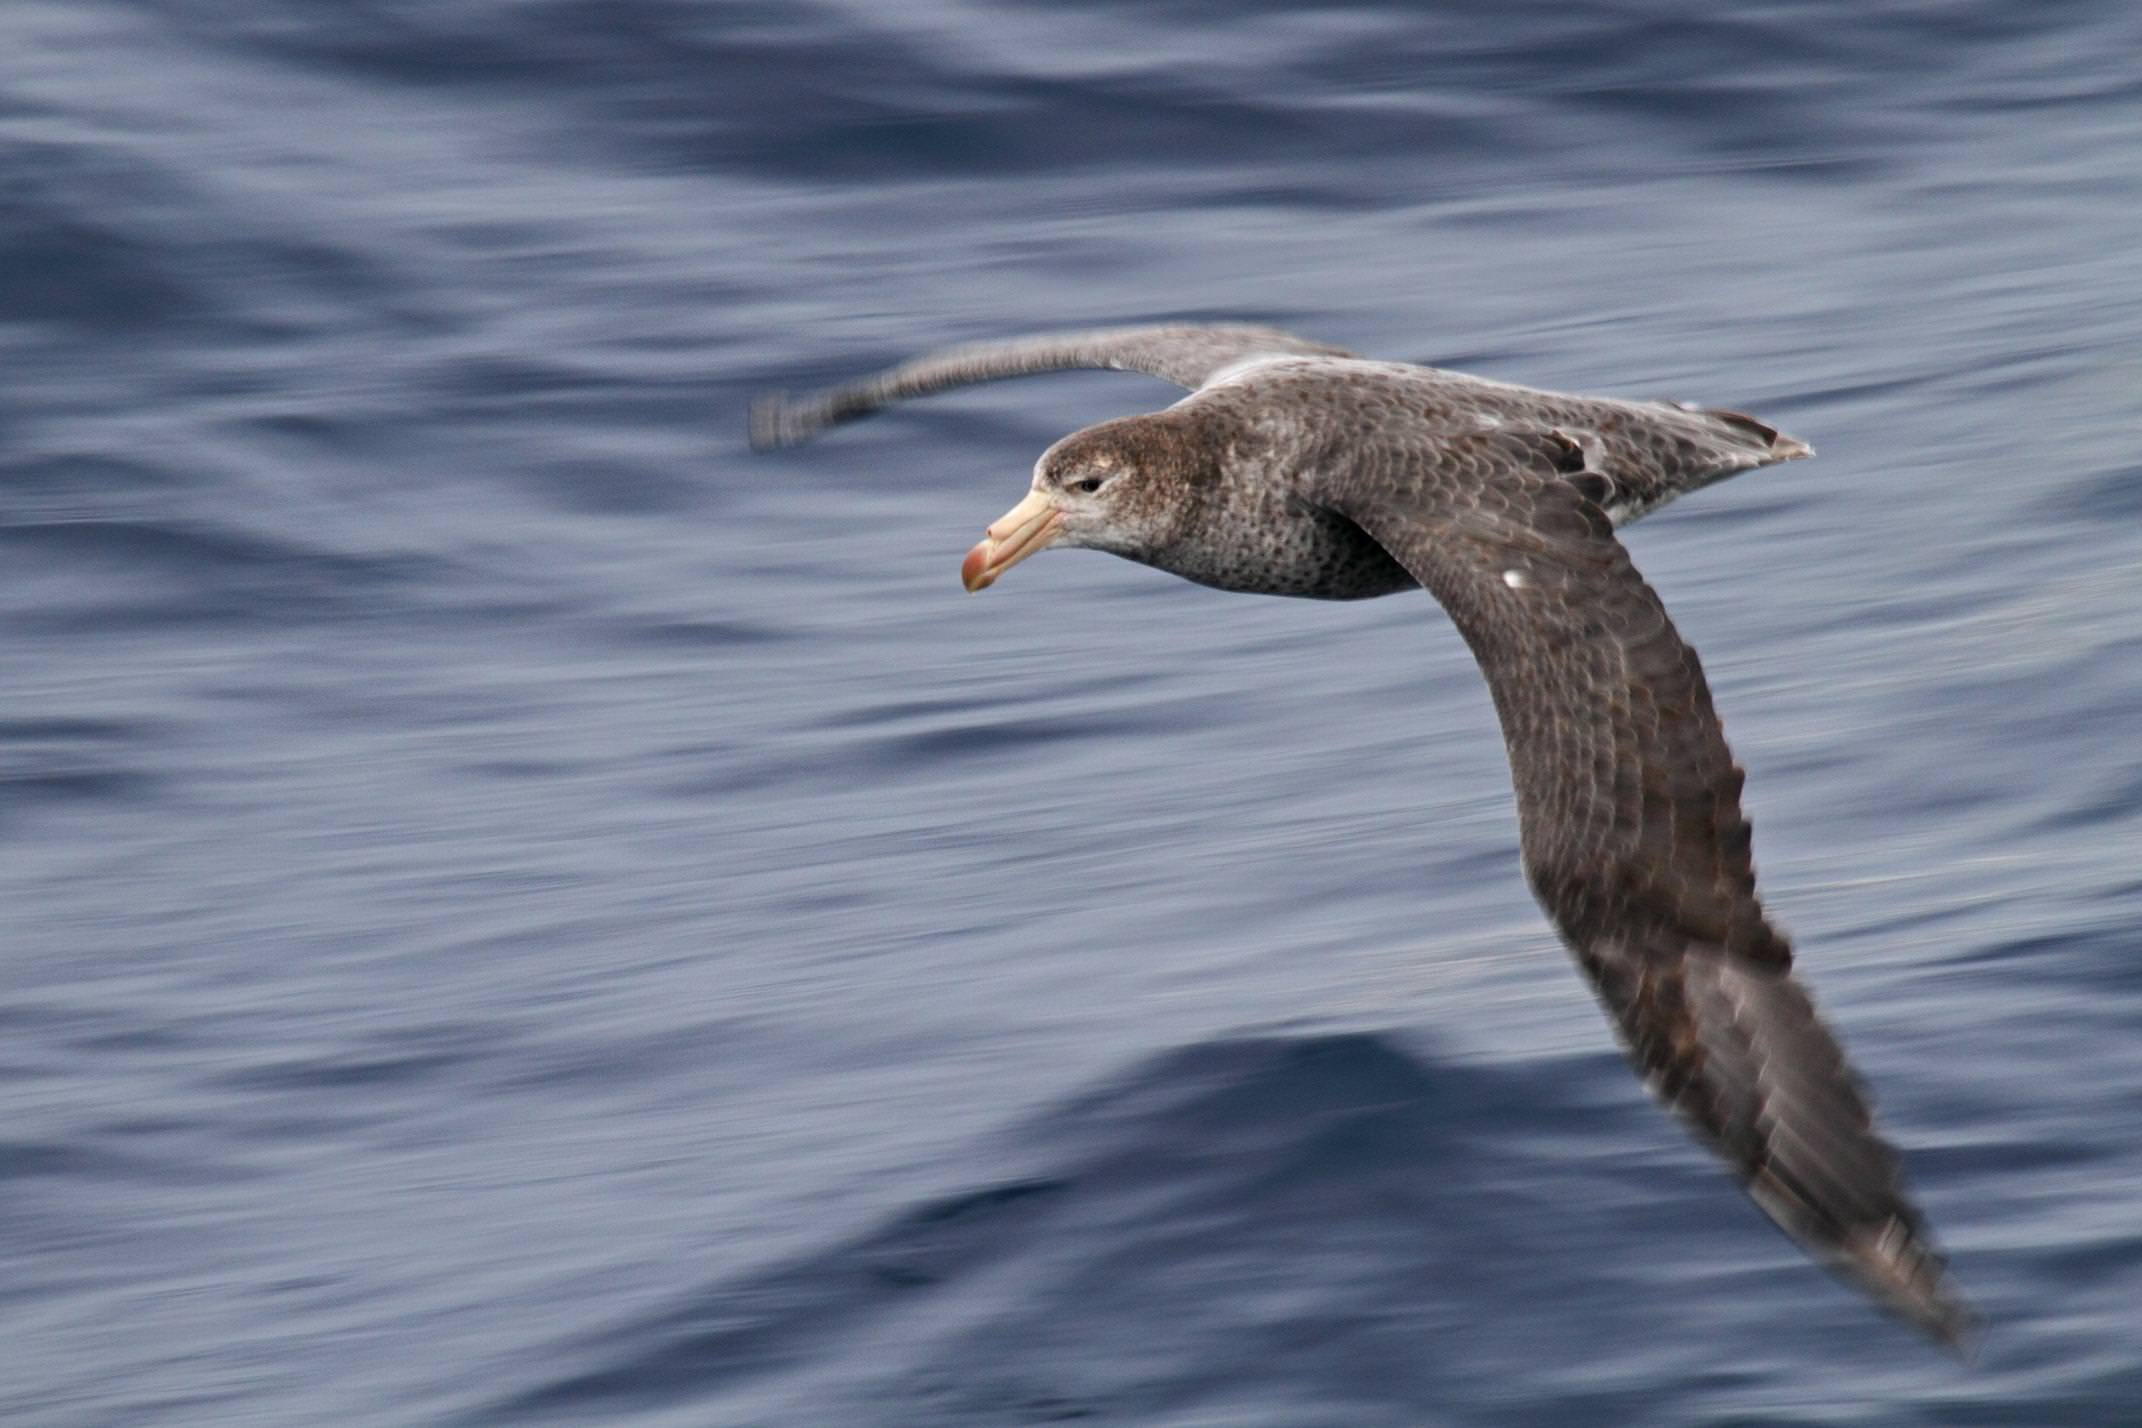 Antarctica drake passage giant petrel flying morgens trolle